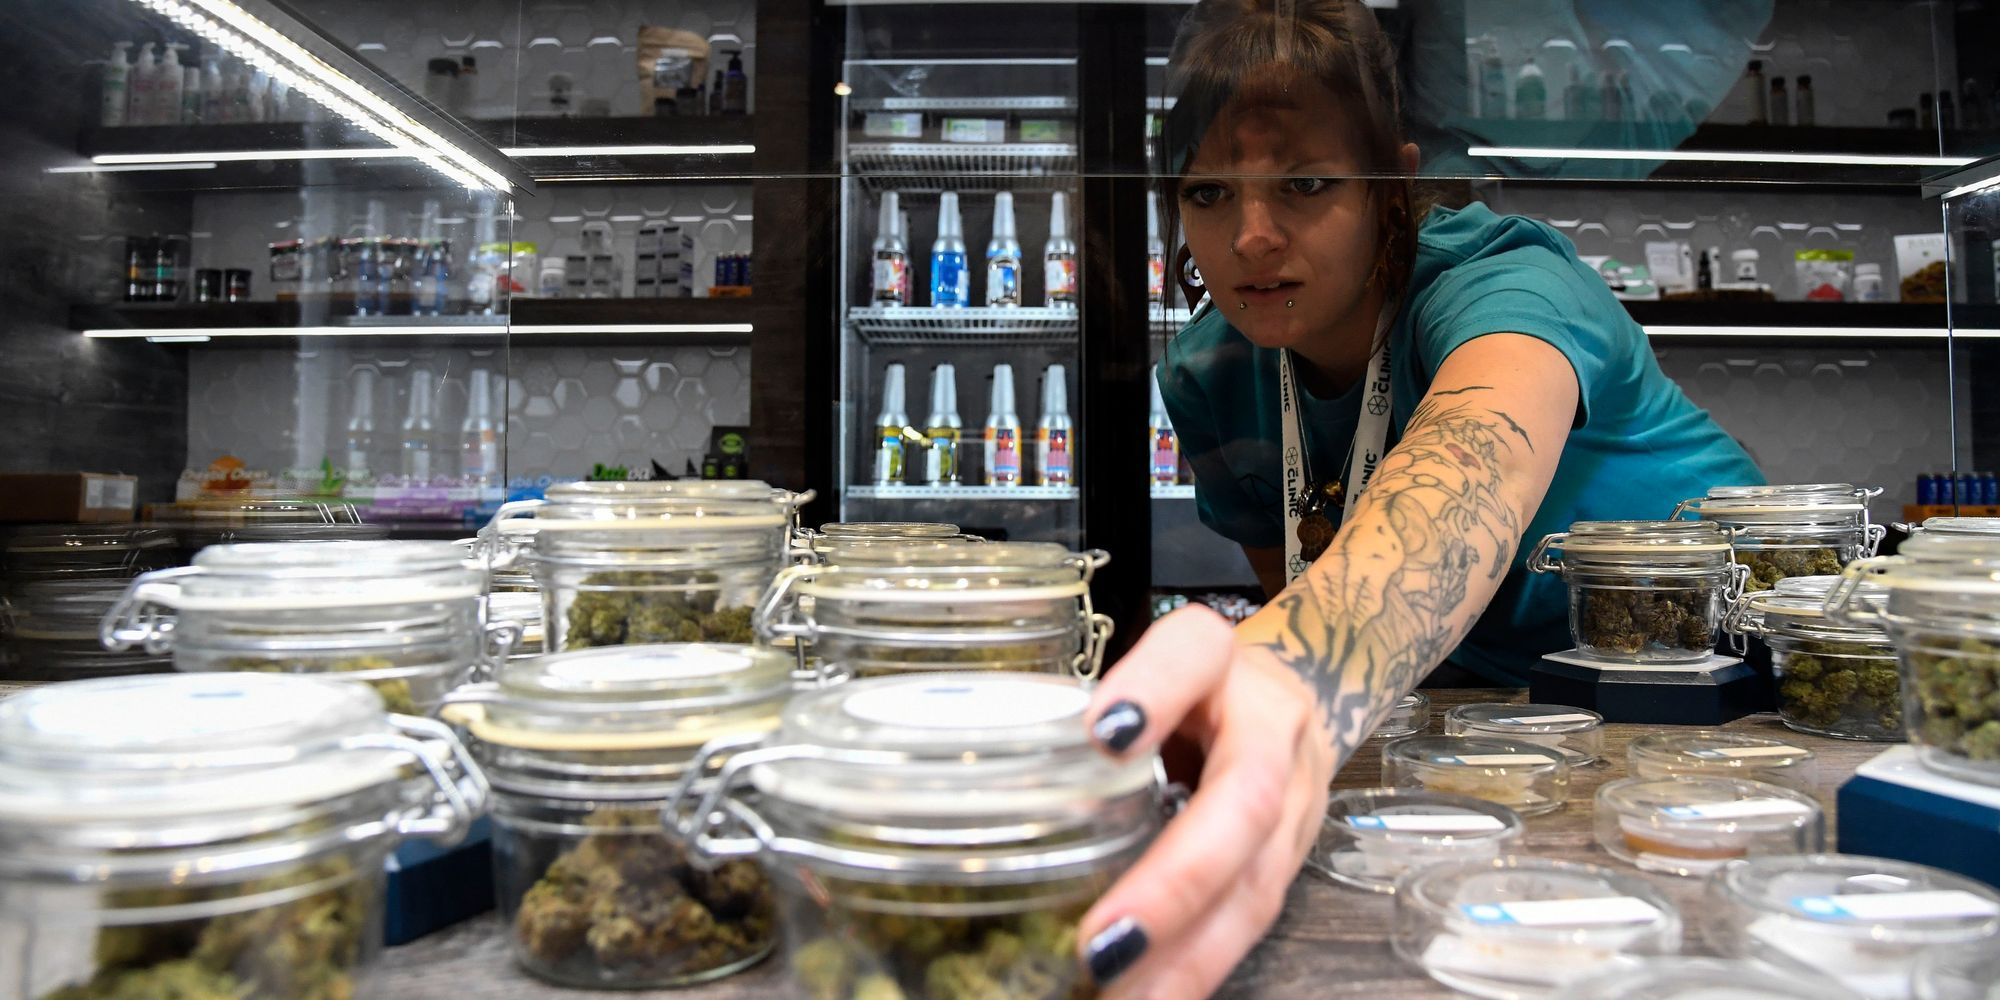 Colorado's Marijuana Industry Is Now Bigger Than Some Countries' Entire GDP